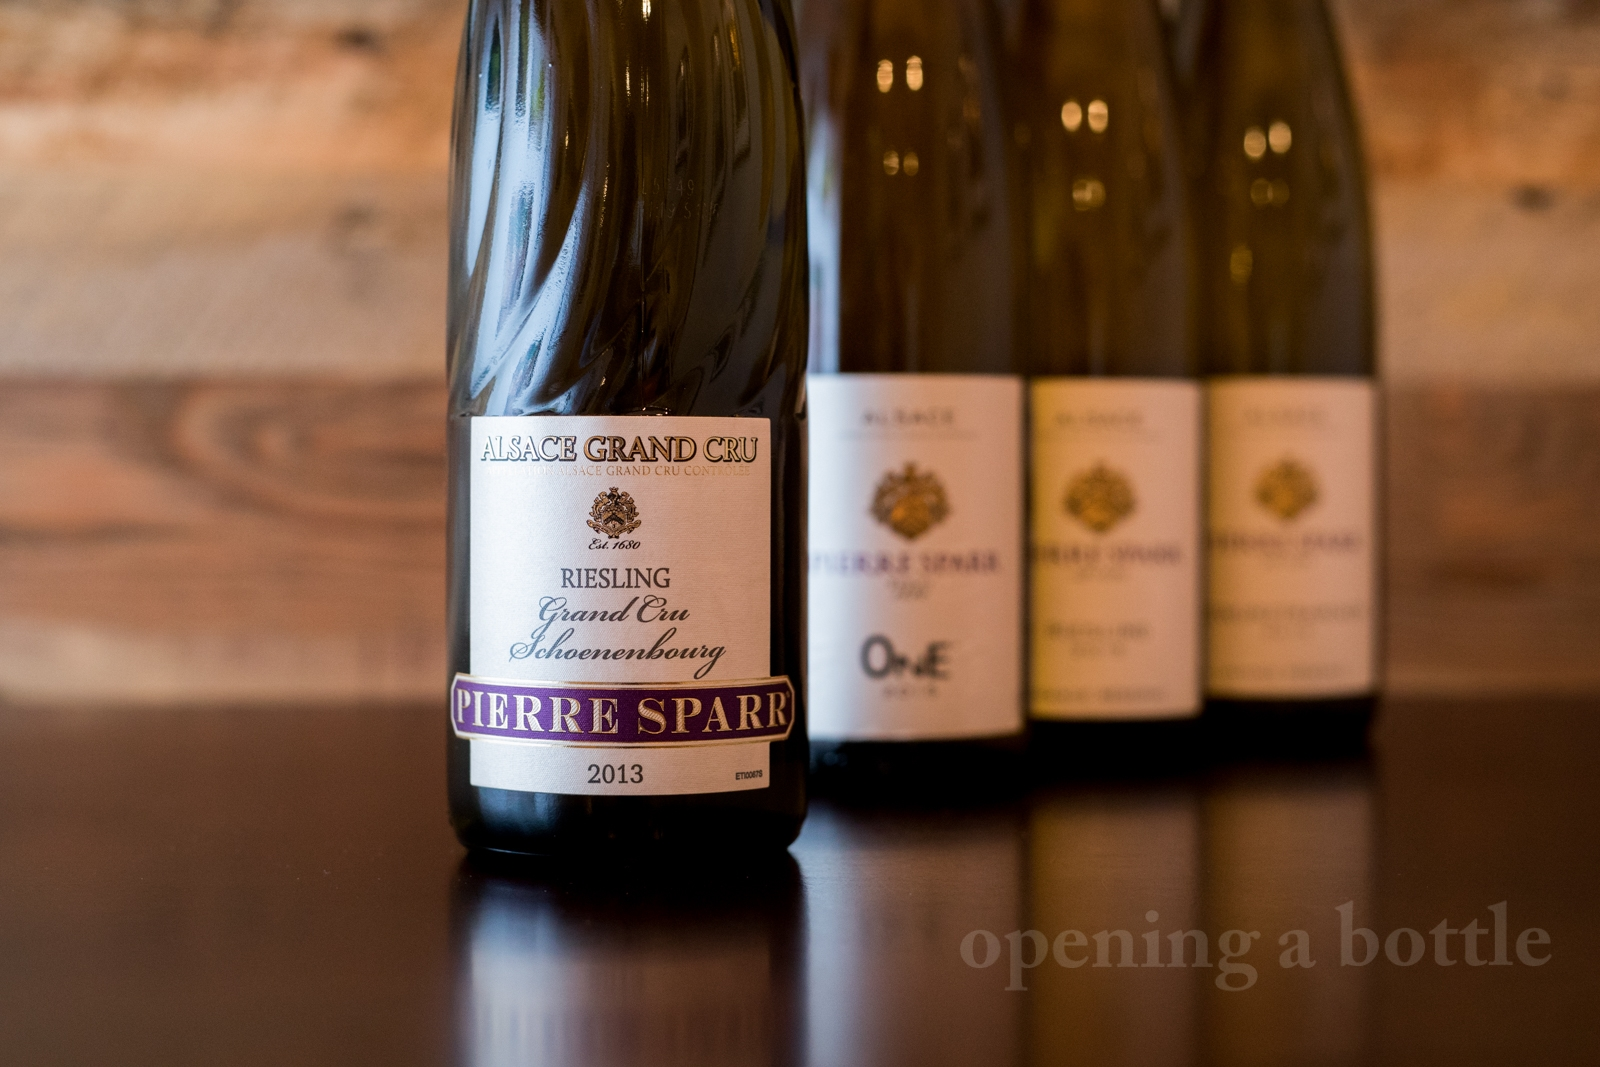 2013 Pierre Sparr Grand Cru Schoenenbourg Riesling. ©Kevin Day/Opening a Bottle